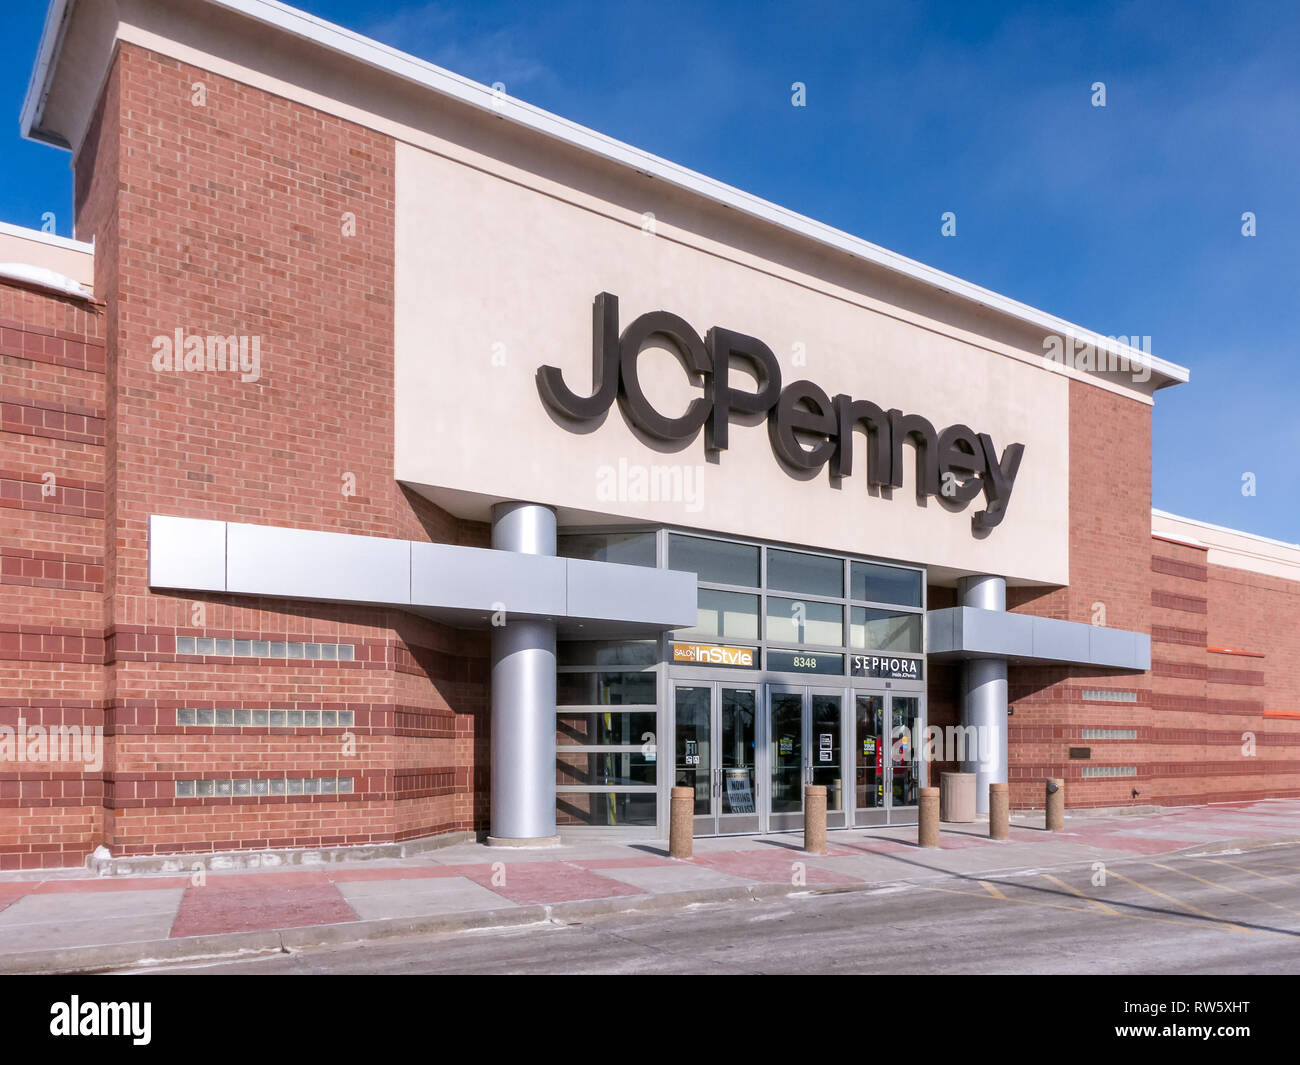 ST. PAUL, MN/USA - MARCH 3, 2019: JC Penny retail store exterior and trademark logo. J. C. Penney Company, Inc. is an American department store chain. - Stock Image